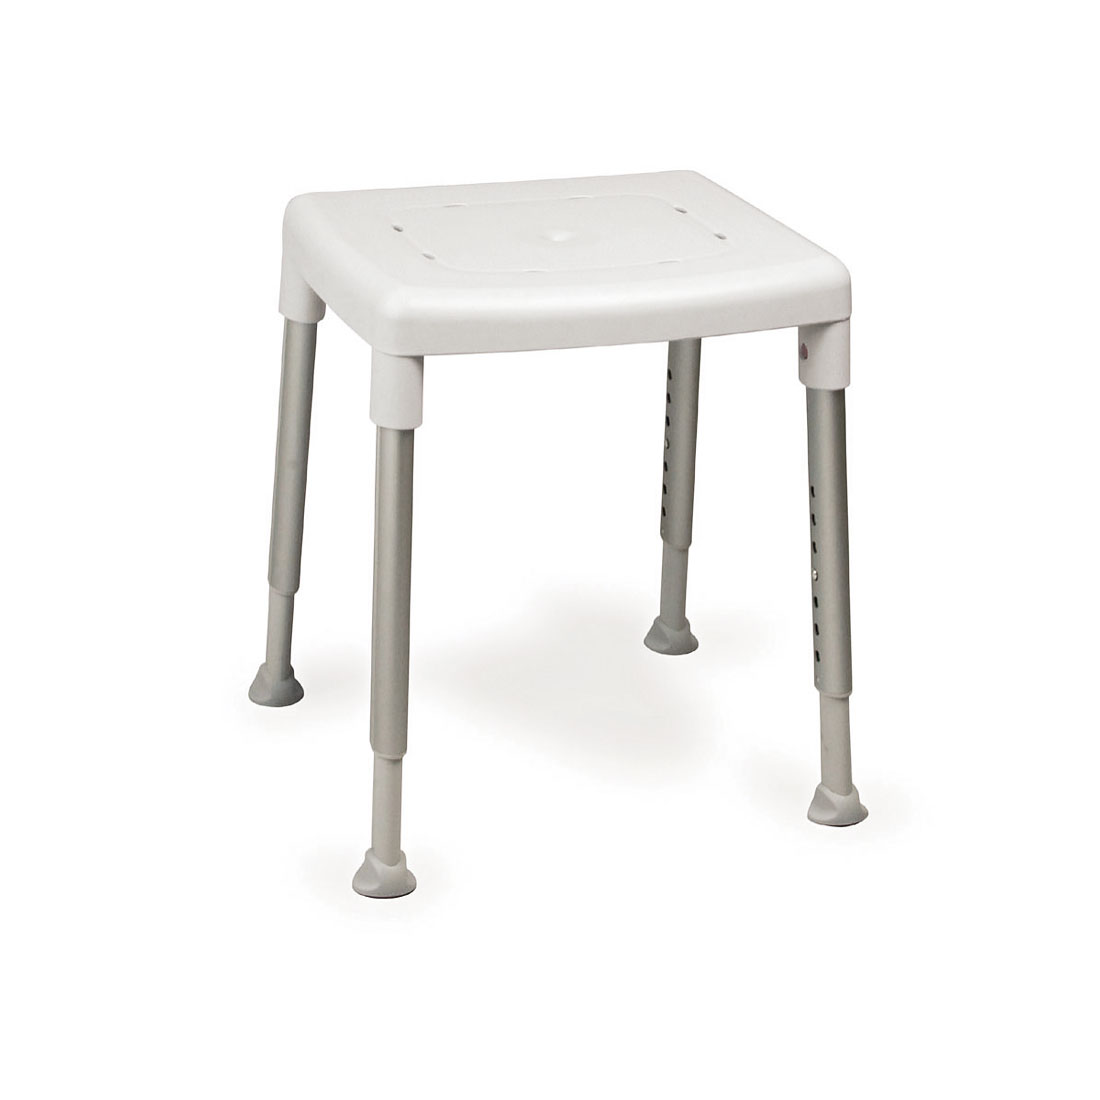 white stool shower delta transfer home chairs the b tub stools accessories n bath depot adjustable bench